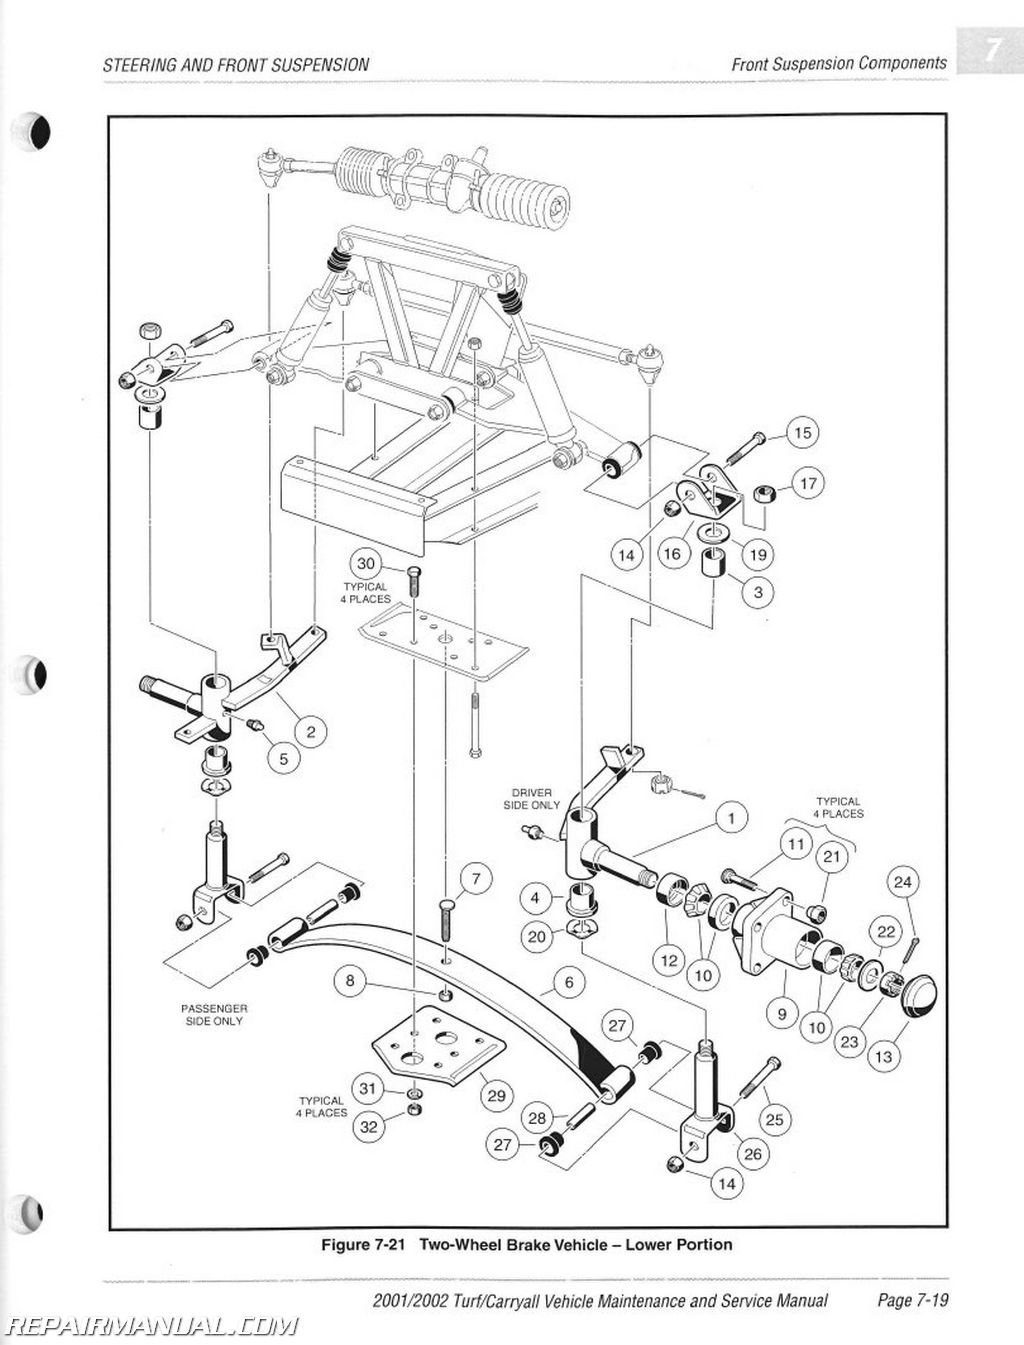 club car electric golf cart wiring diagram hvac practice ds 94 get free image